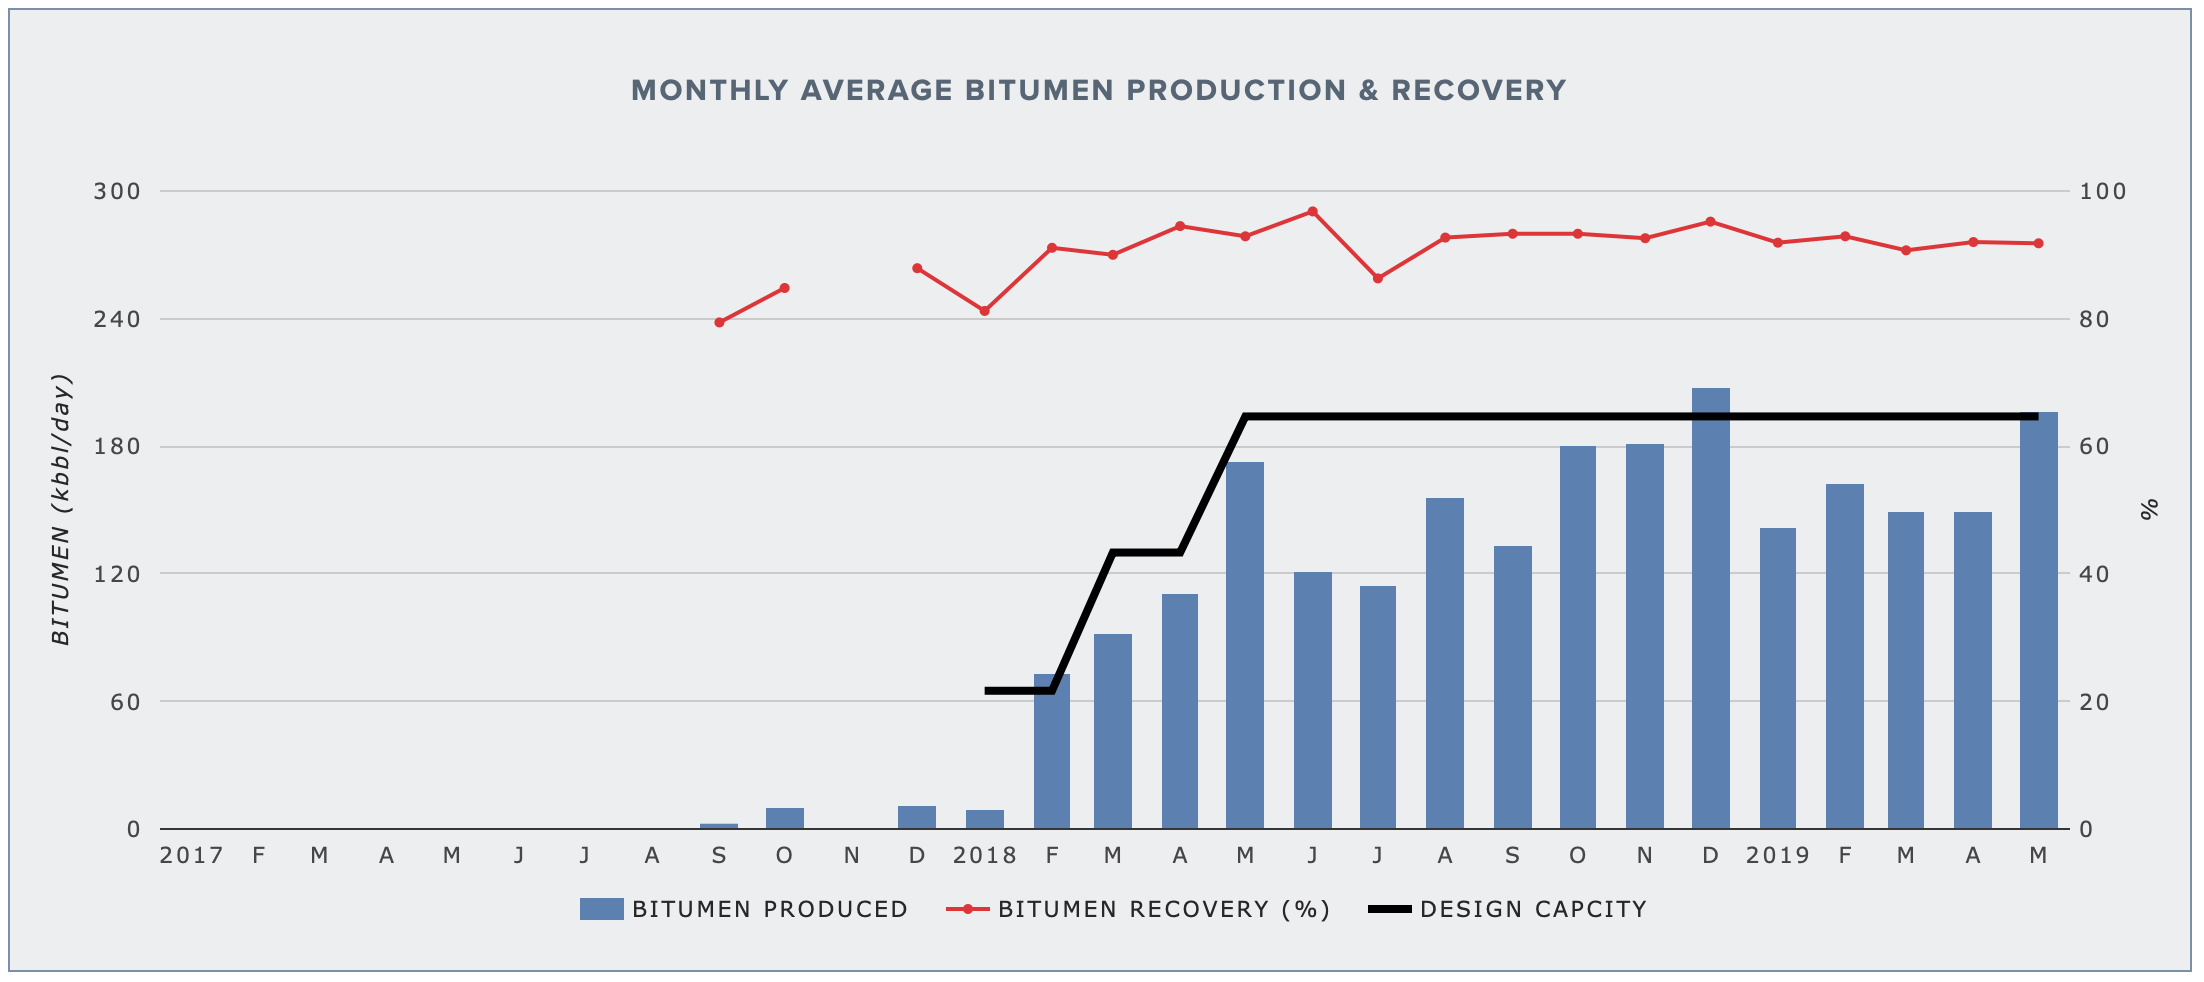 FORT HILLS MINE — BITUMEN PRODUCTION AND RECOVERY